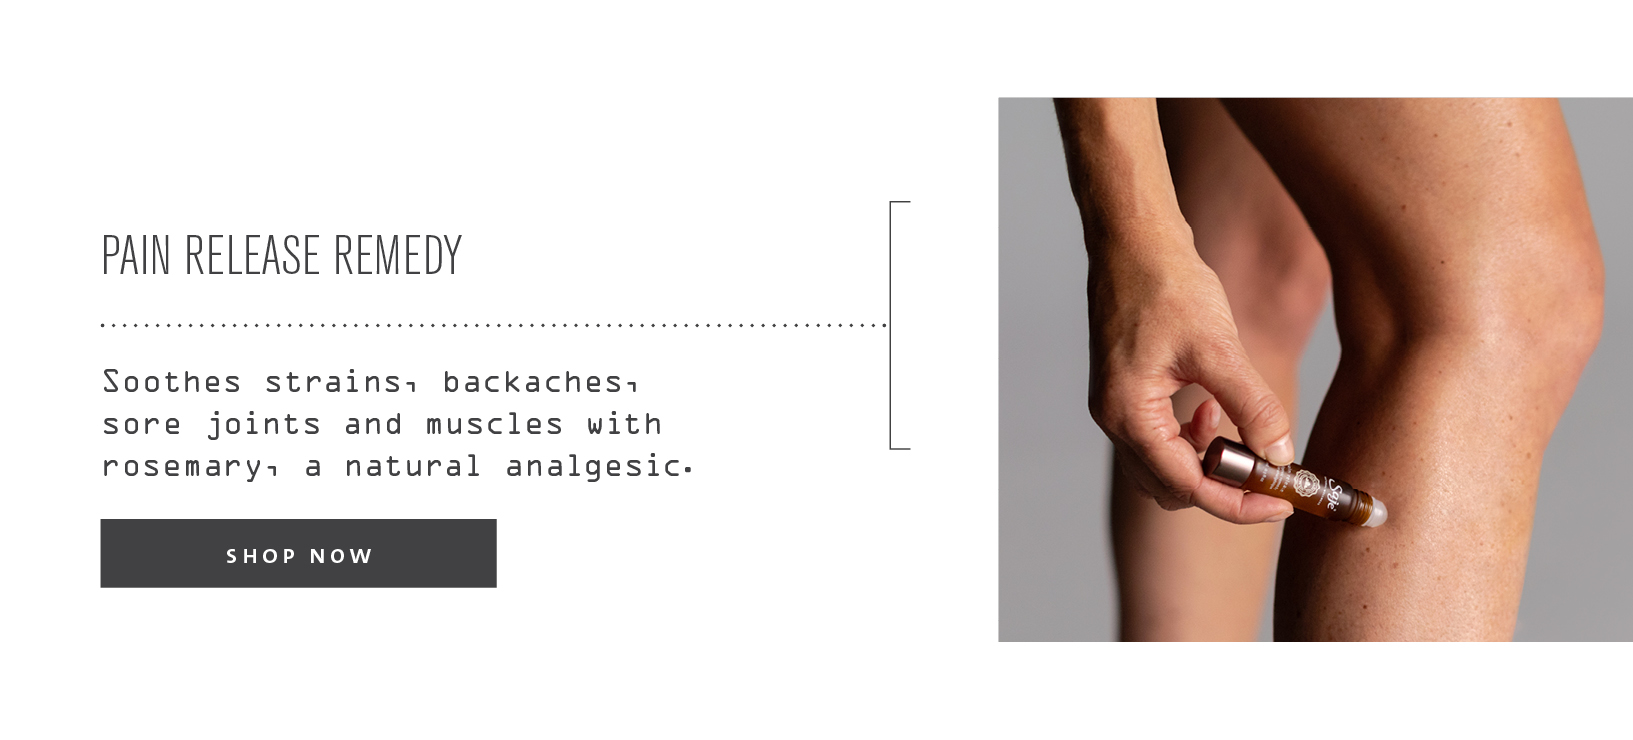 pain release remedy - soothes strains, backaches, sore joints and muscles with rosemary, a natural analgesic